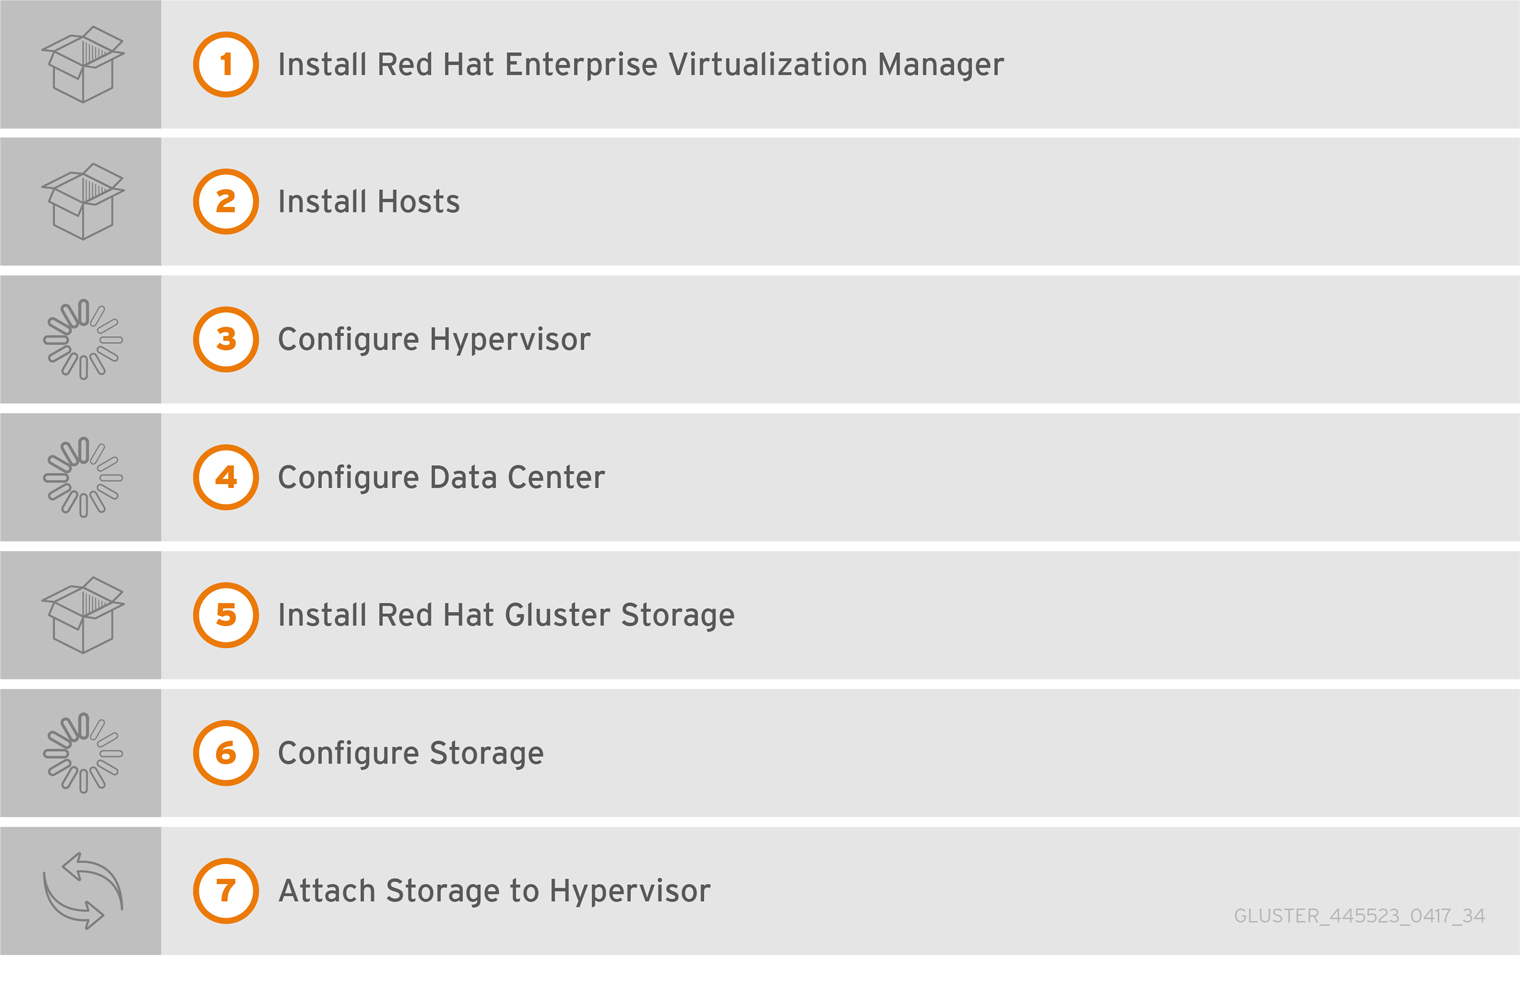 Configuring Red Hat Virtualization with Red Hat Gluster